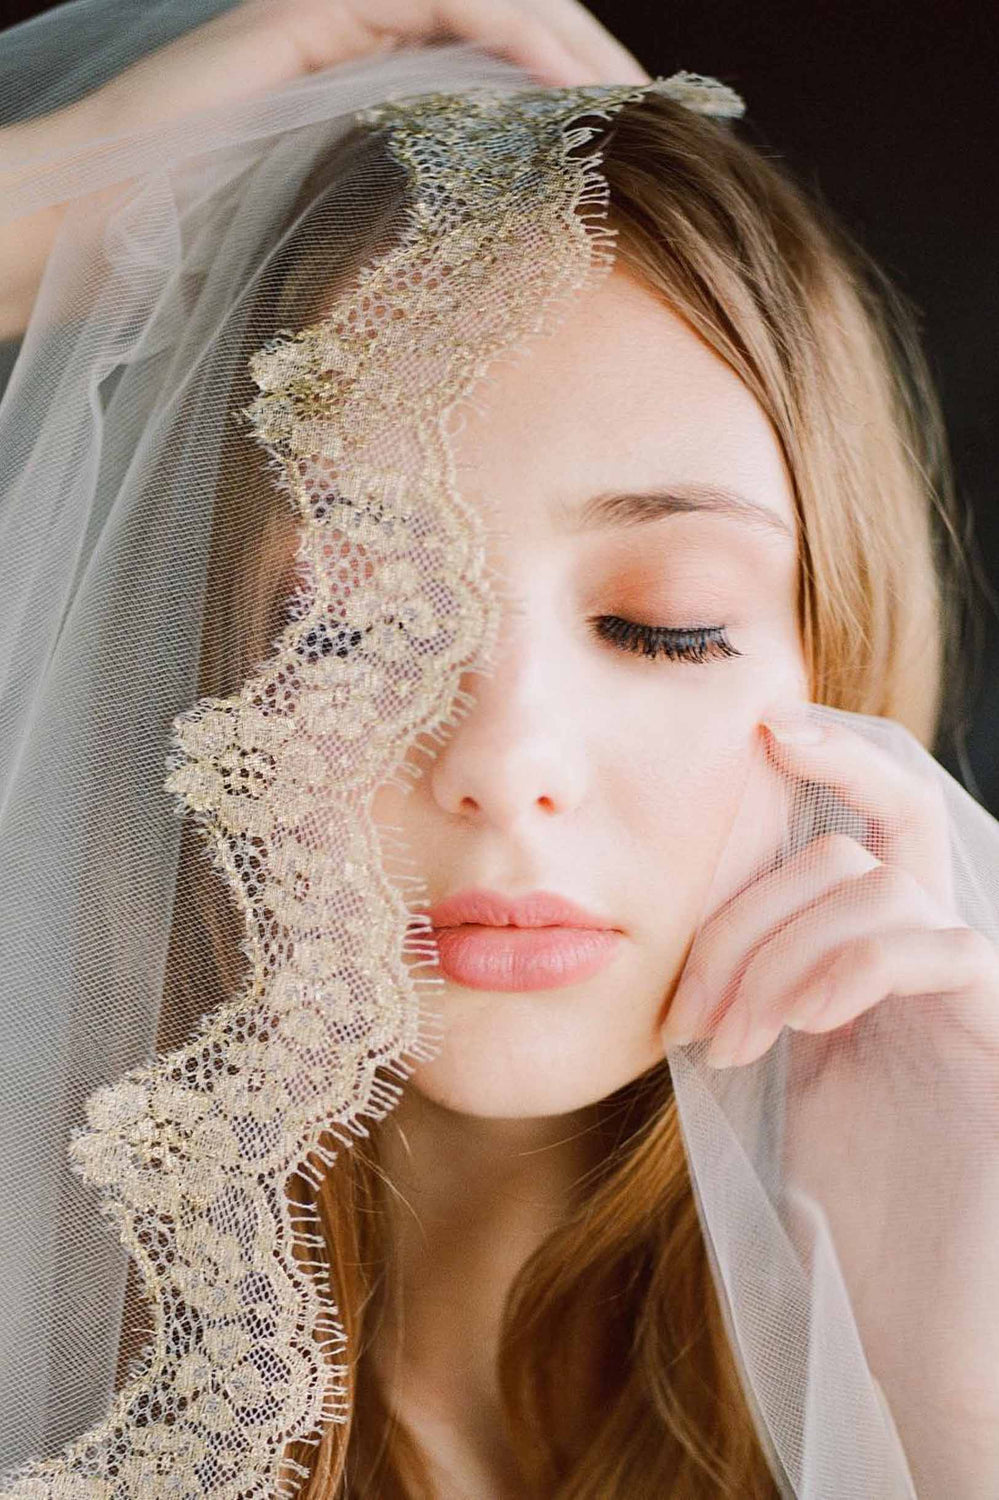 Lacy Gilded French Lace mantilla veil in Ivory Gold